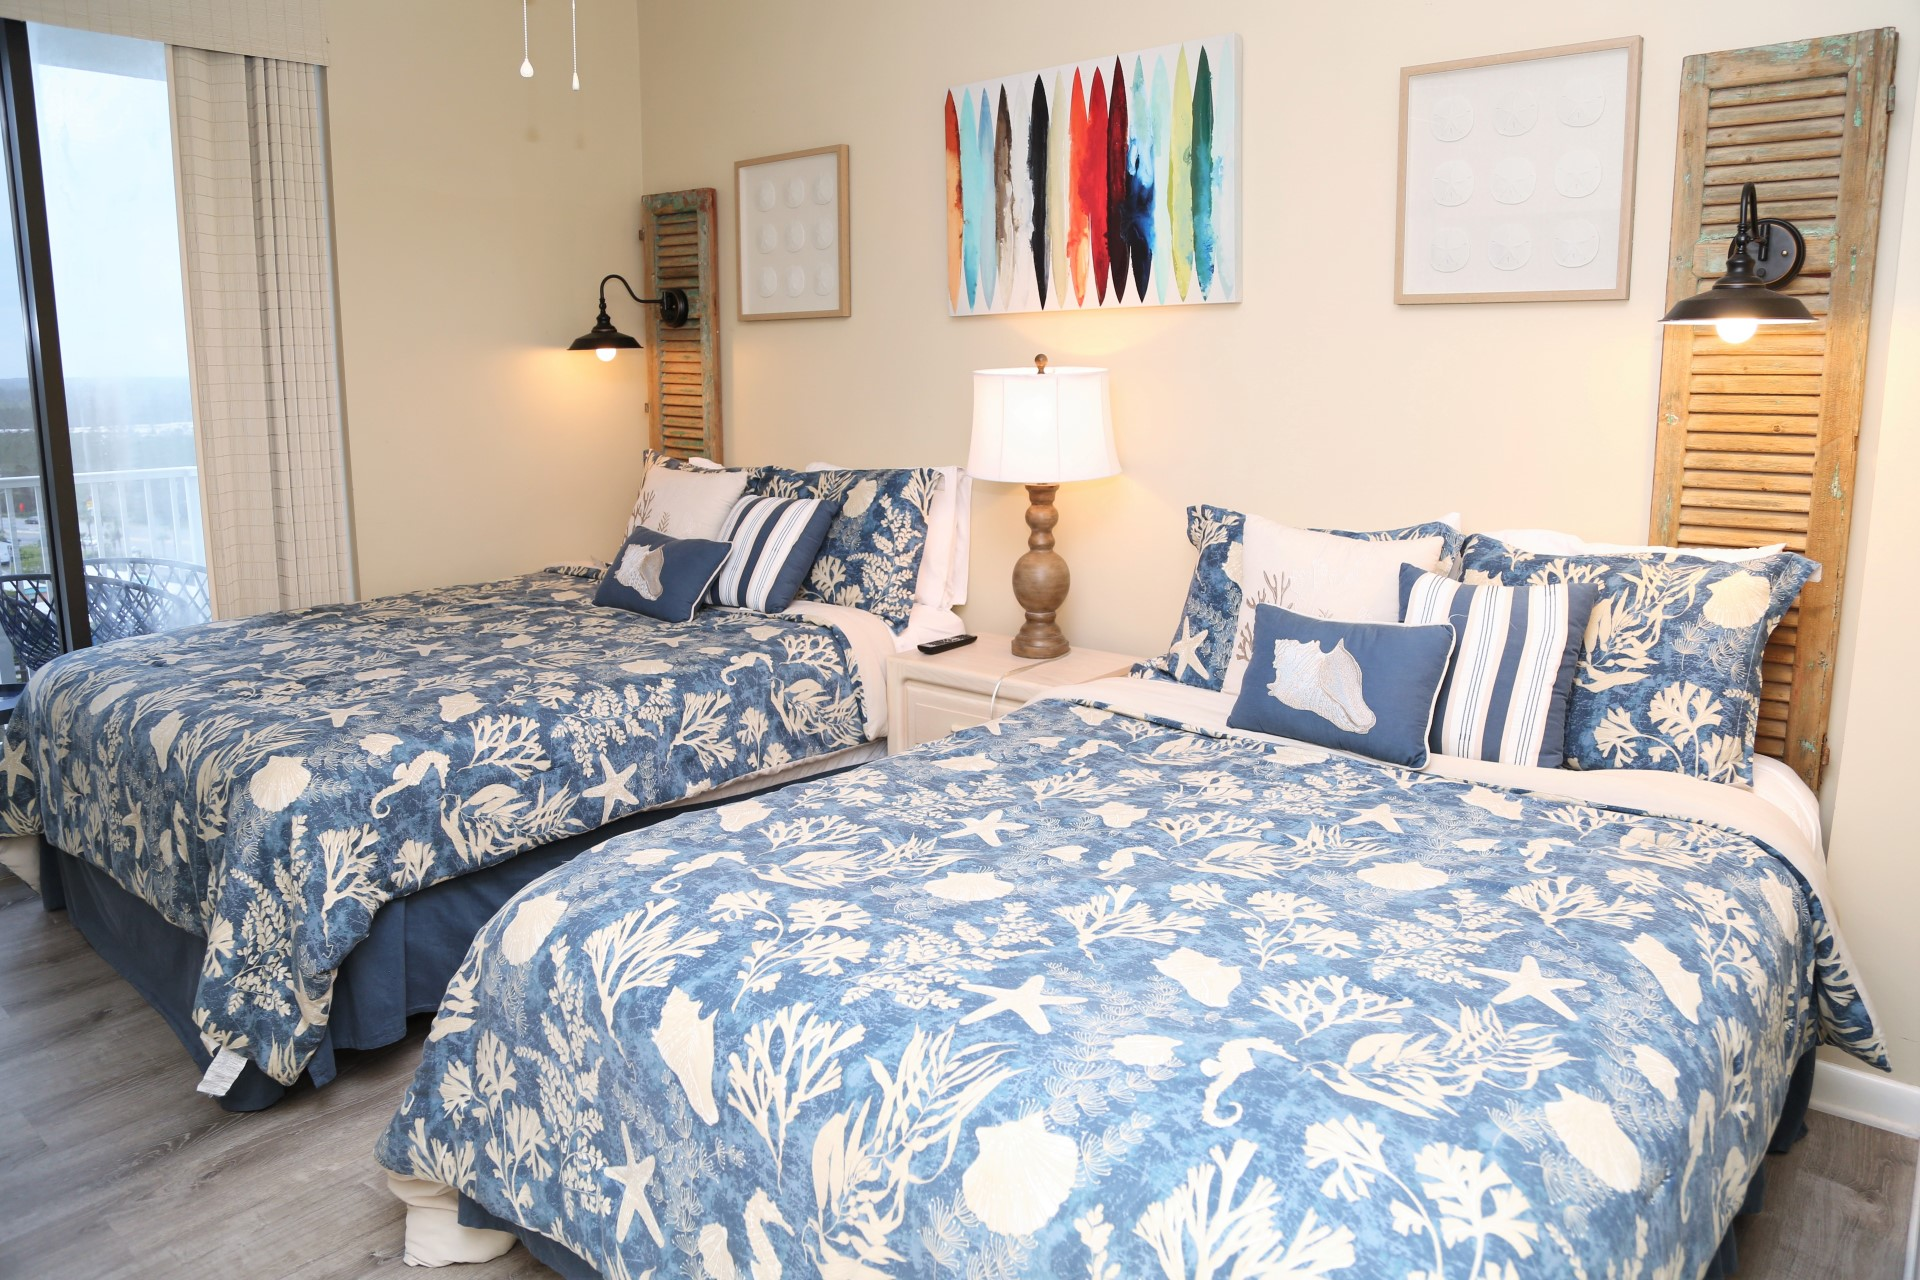 The third bedroom includes two Queen-sized beds.